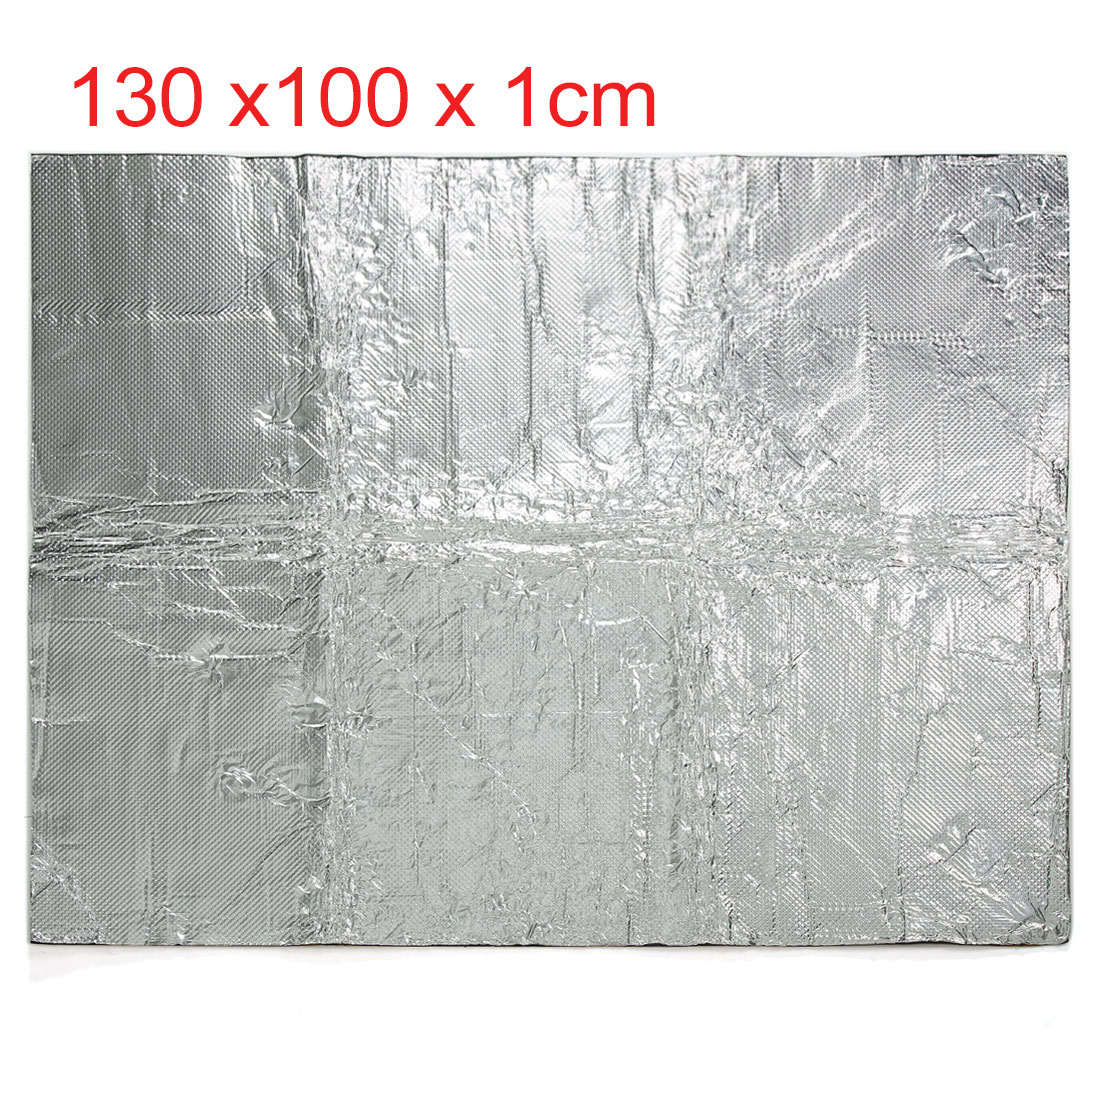 Heat Insulation Shield Mat Protector Silver Tone 130X100cm For Car Engine